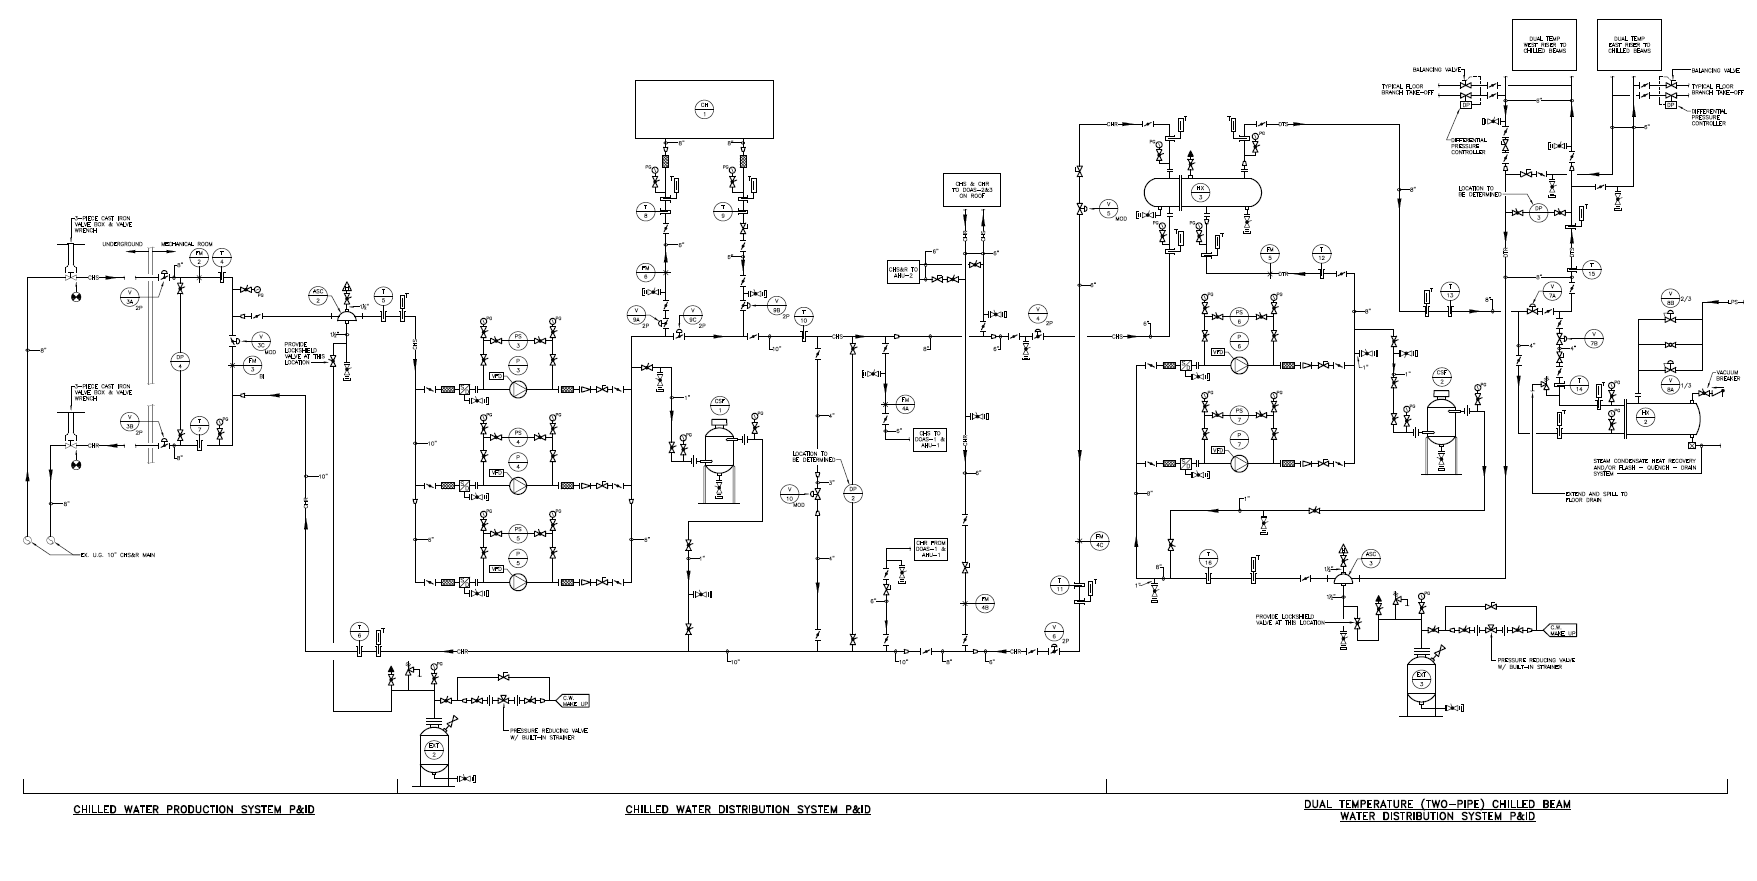 hvac p id drawing wiring library HVAC Ductwork Layout Design dual temperature